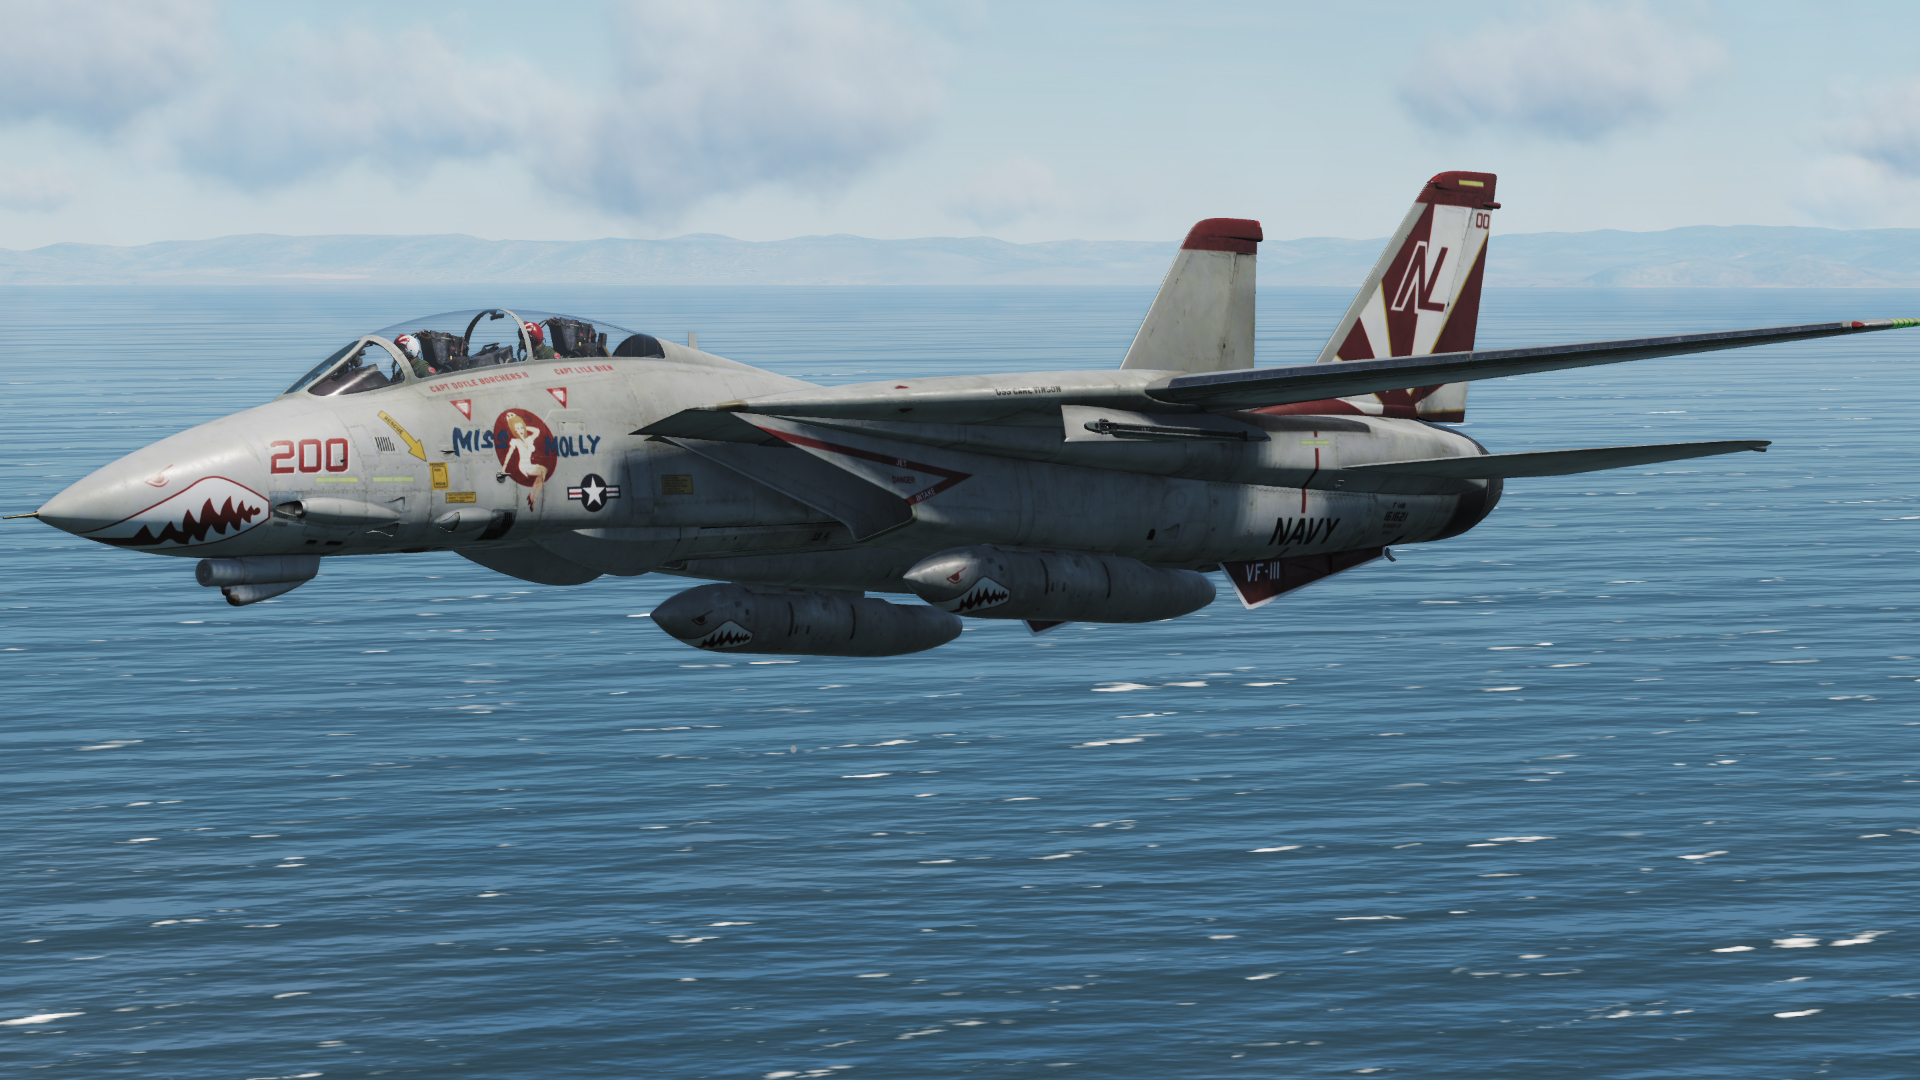 "F-14B - VF-111 Sundowners 200 ""Miss Molly"" V2.1"